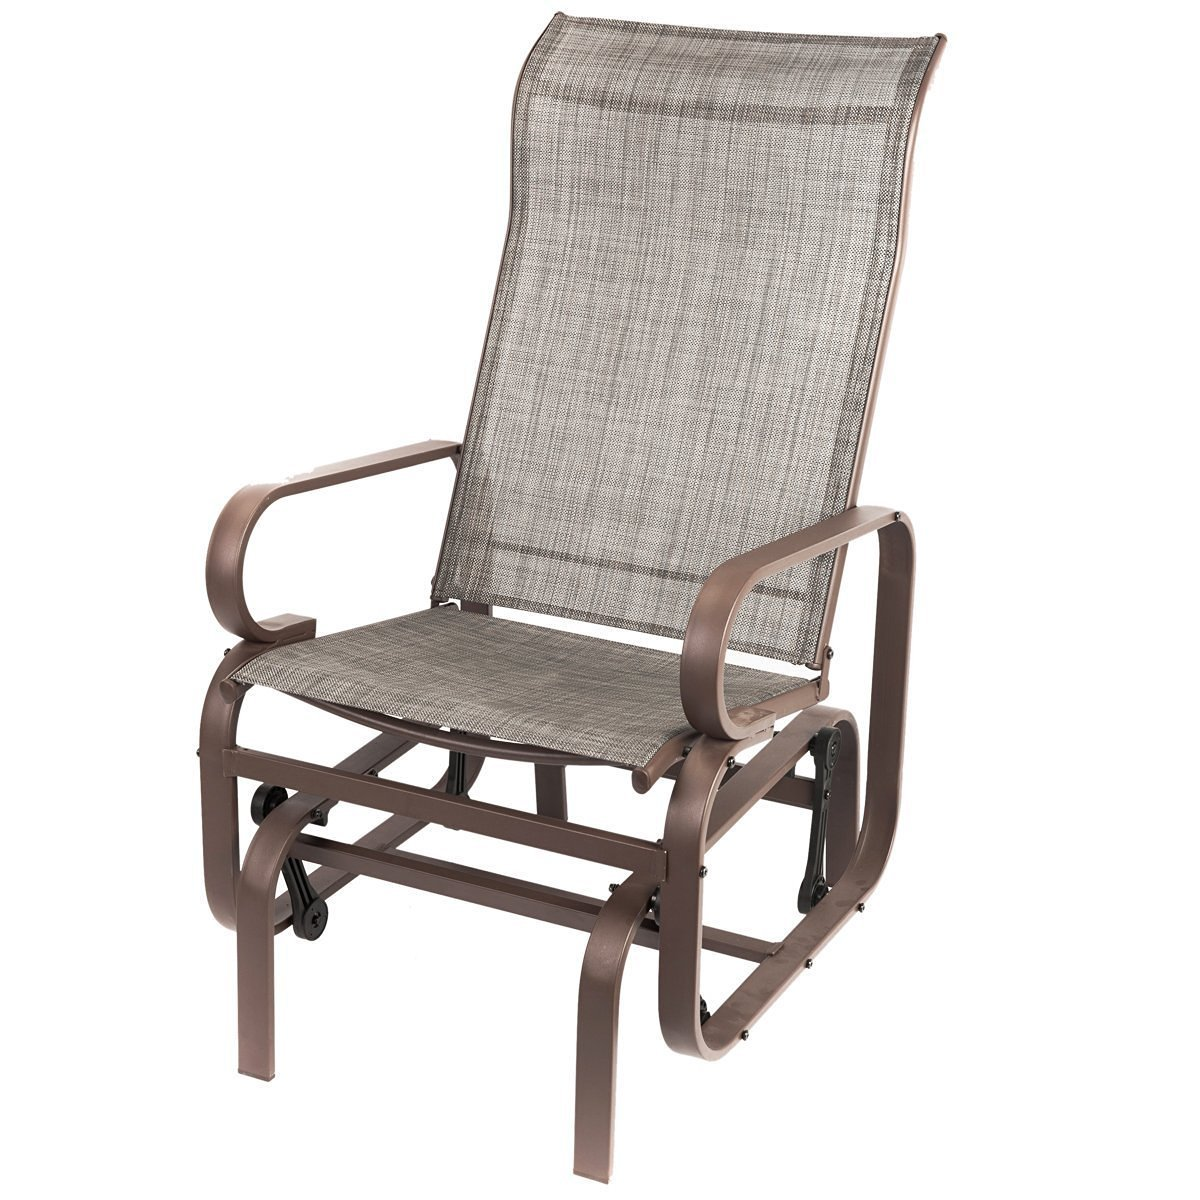 Delightful Naturefun Outdoor Patio Rocker Chair, Balcony Glider Rocking Lounge Chair,  All Weatherproof, Gray   Walmart.com